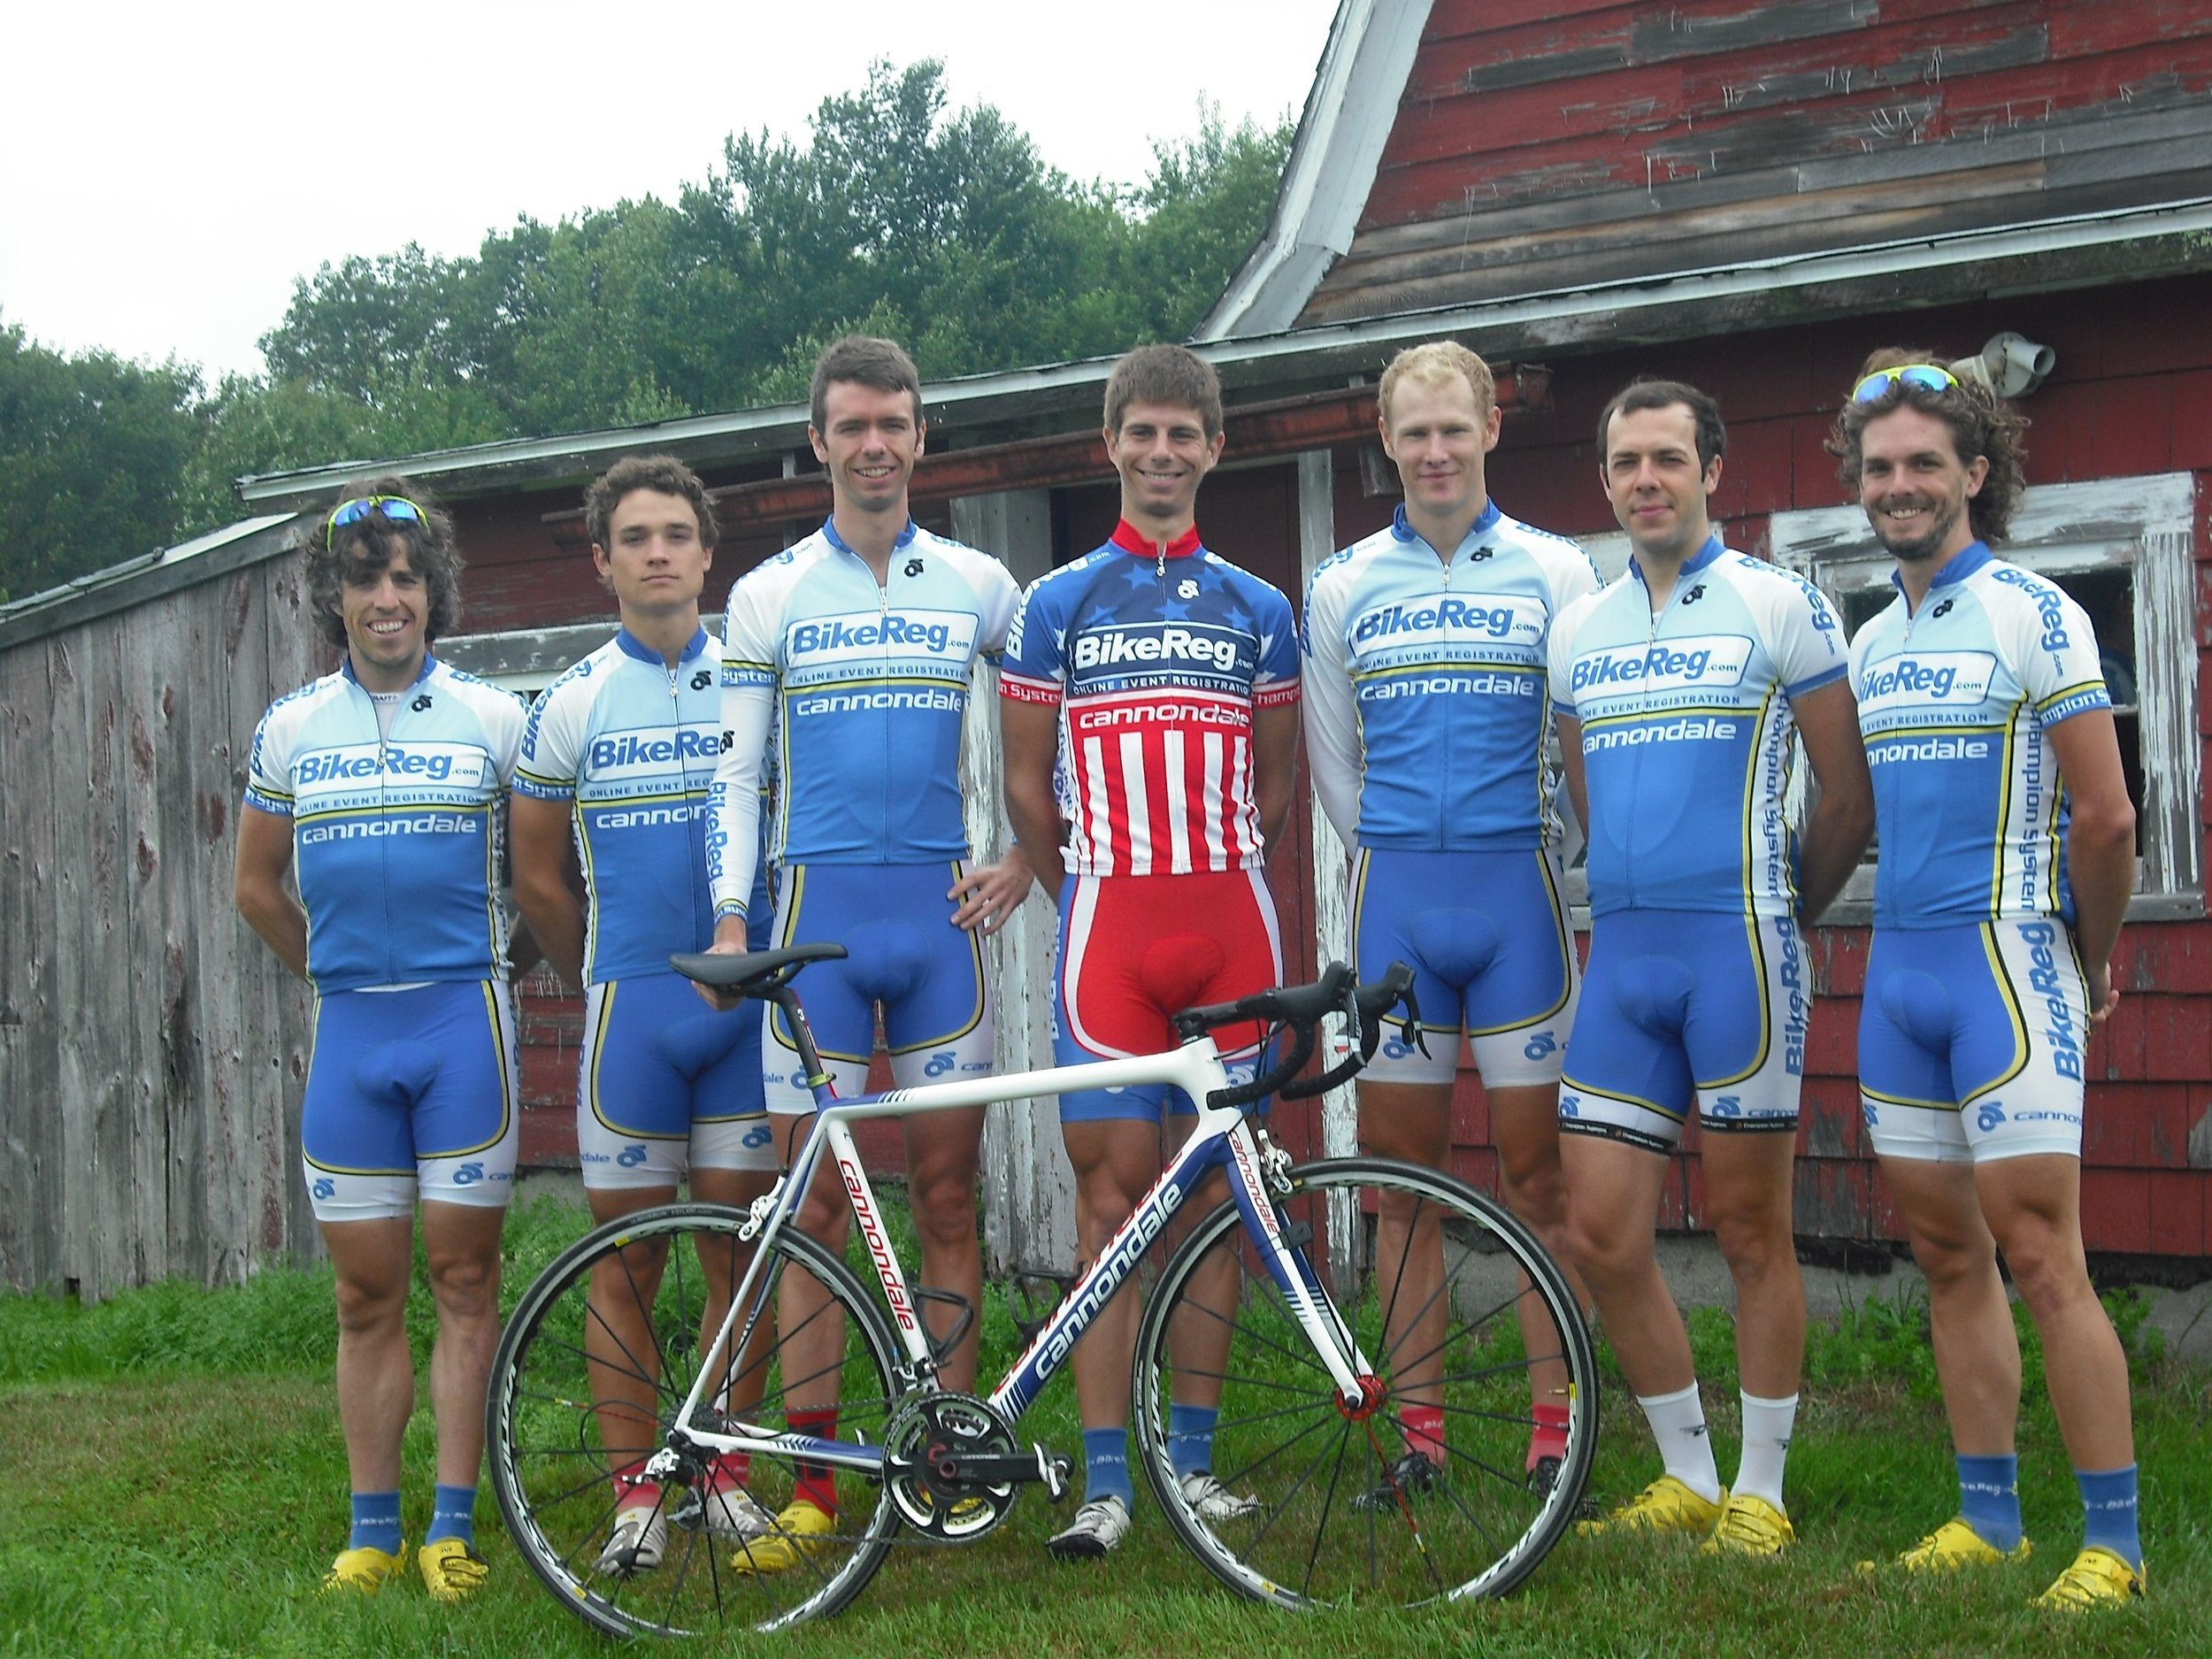 BikeReg.com / Cannondale, 2011, at the Tokeneke RR. Coach Steve on far right.